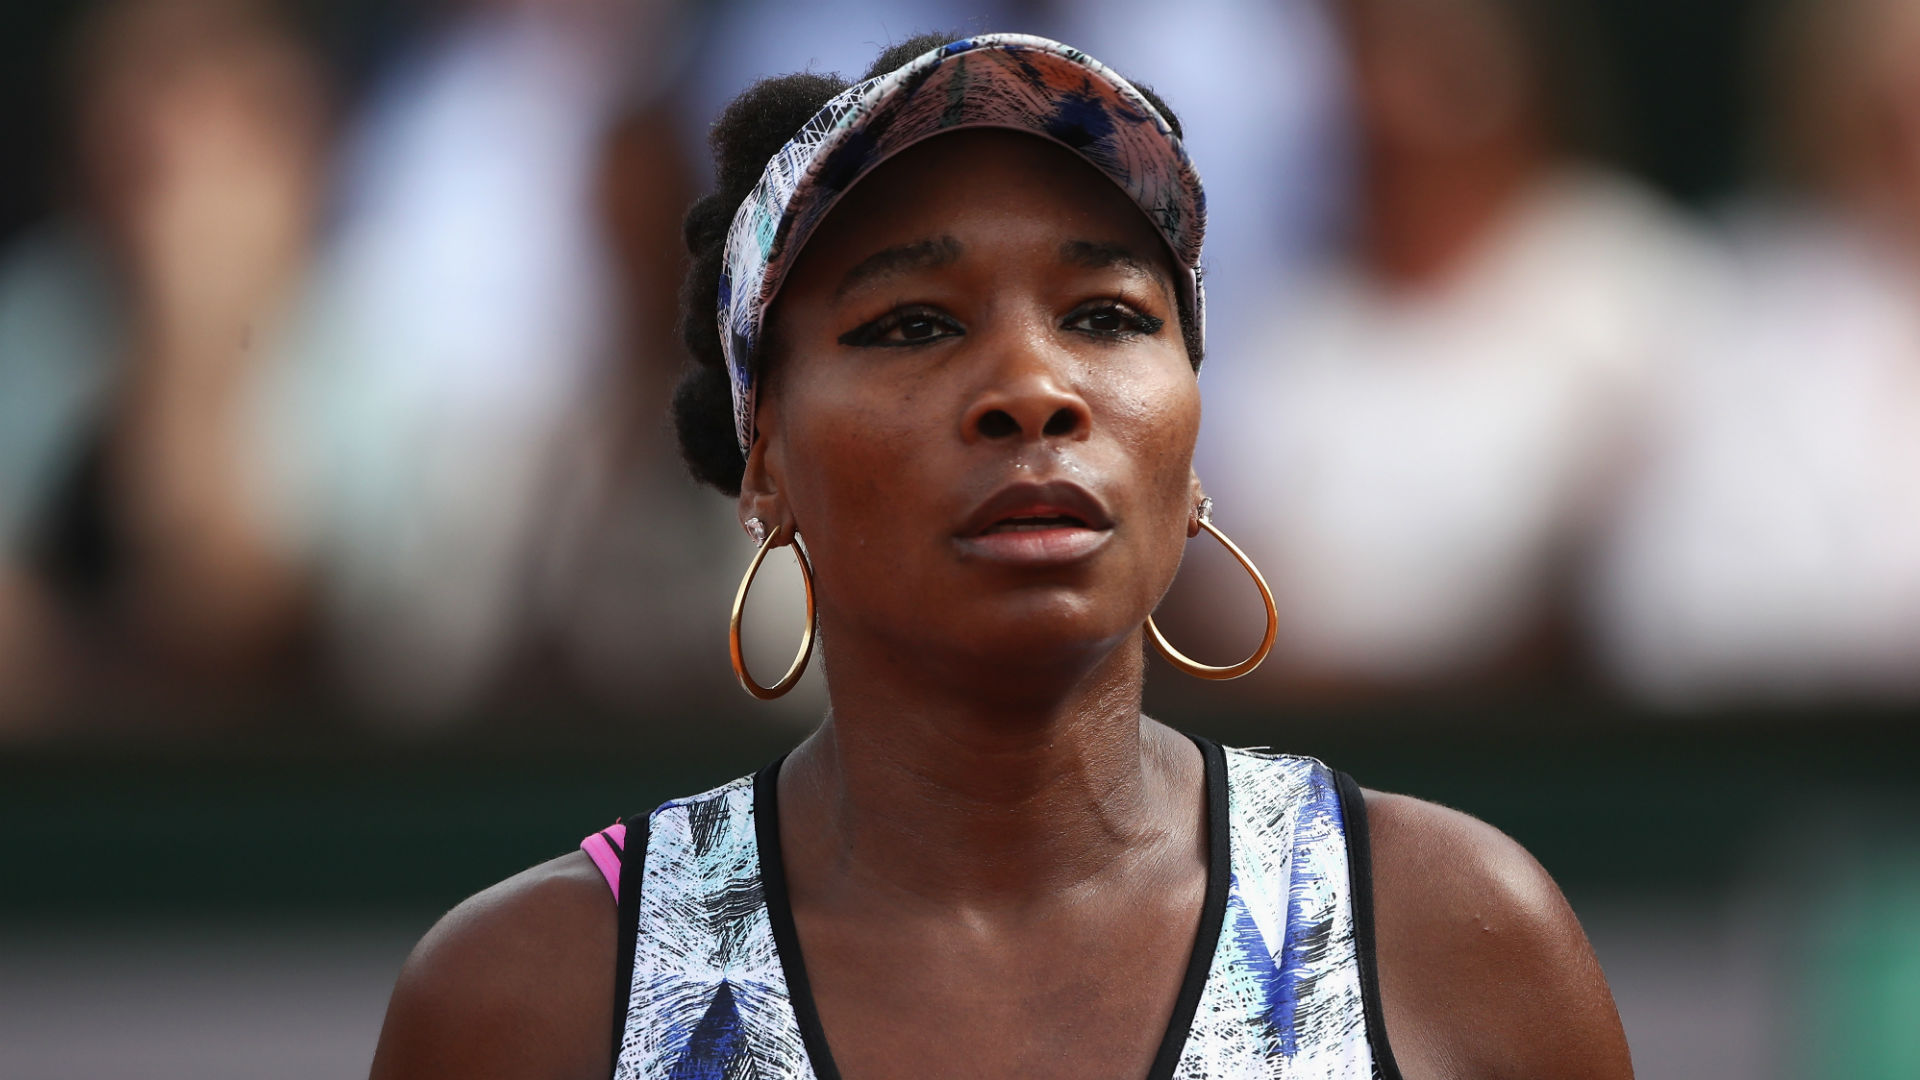 Venus Williams 'lawfully entered intersection' at scene of fatal crash, police say